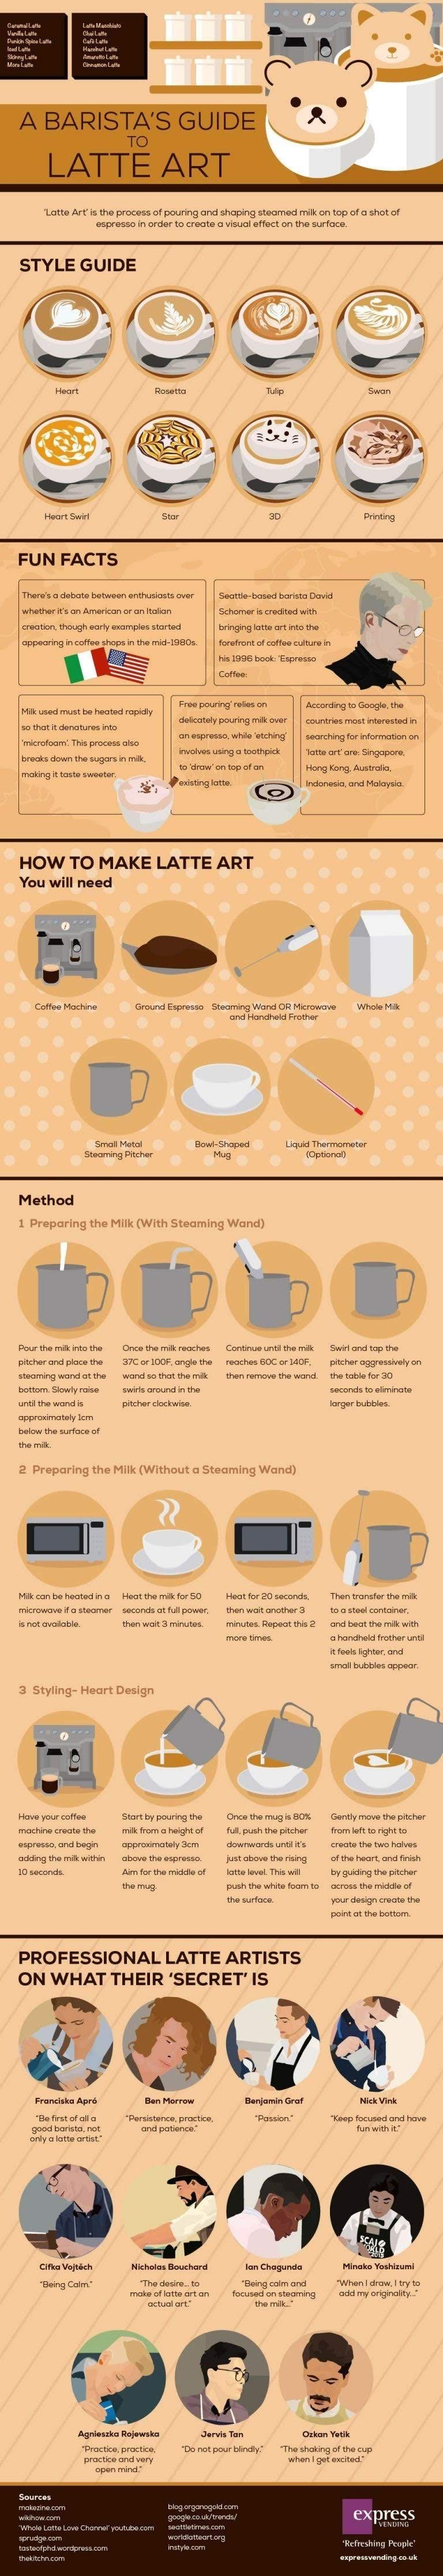 Barista's Latte Art Guide #infographic